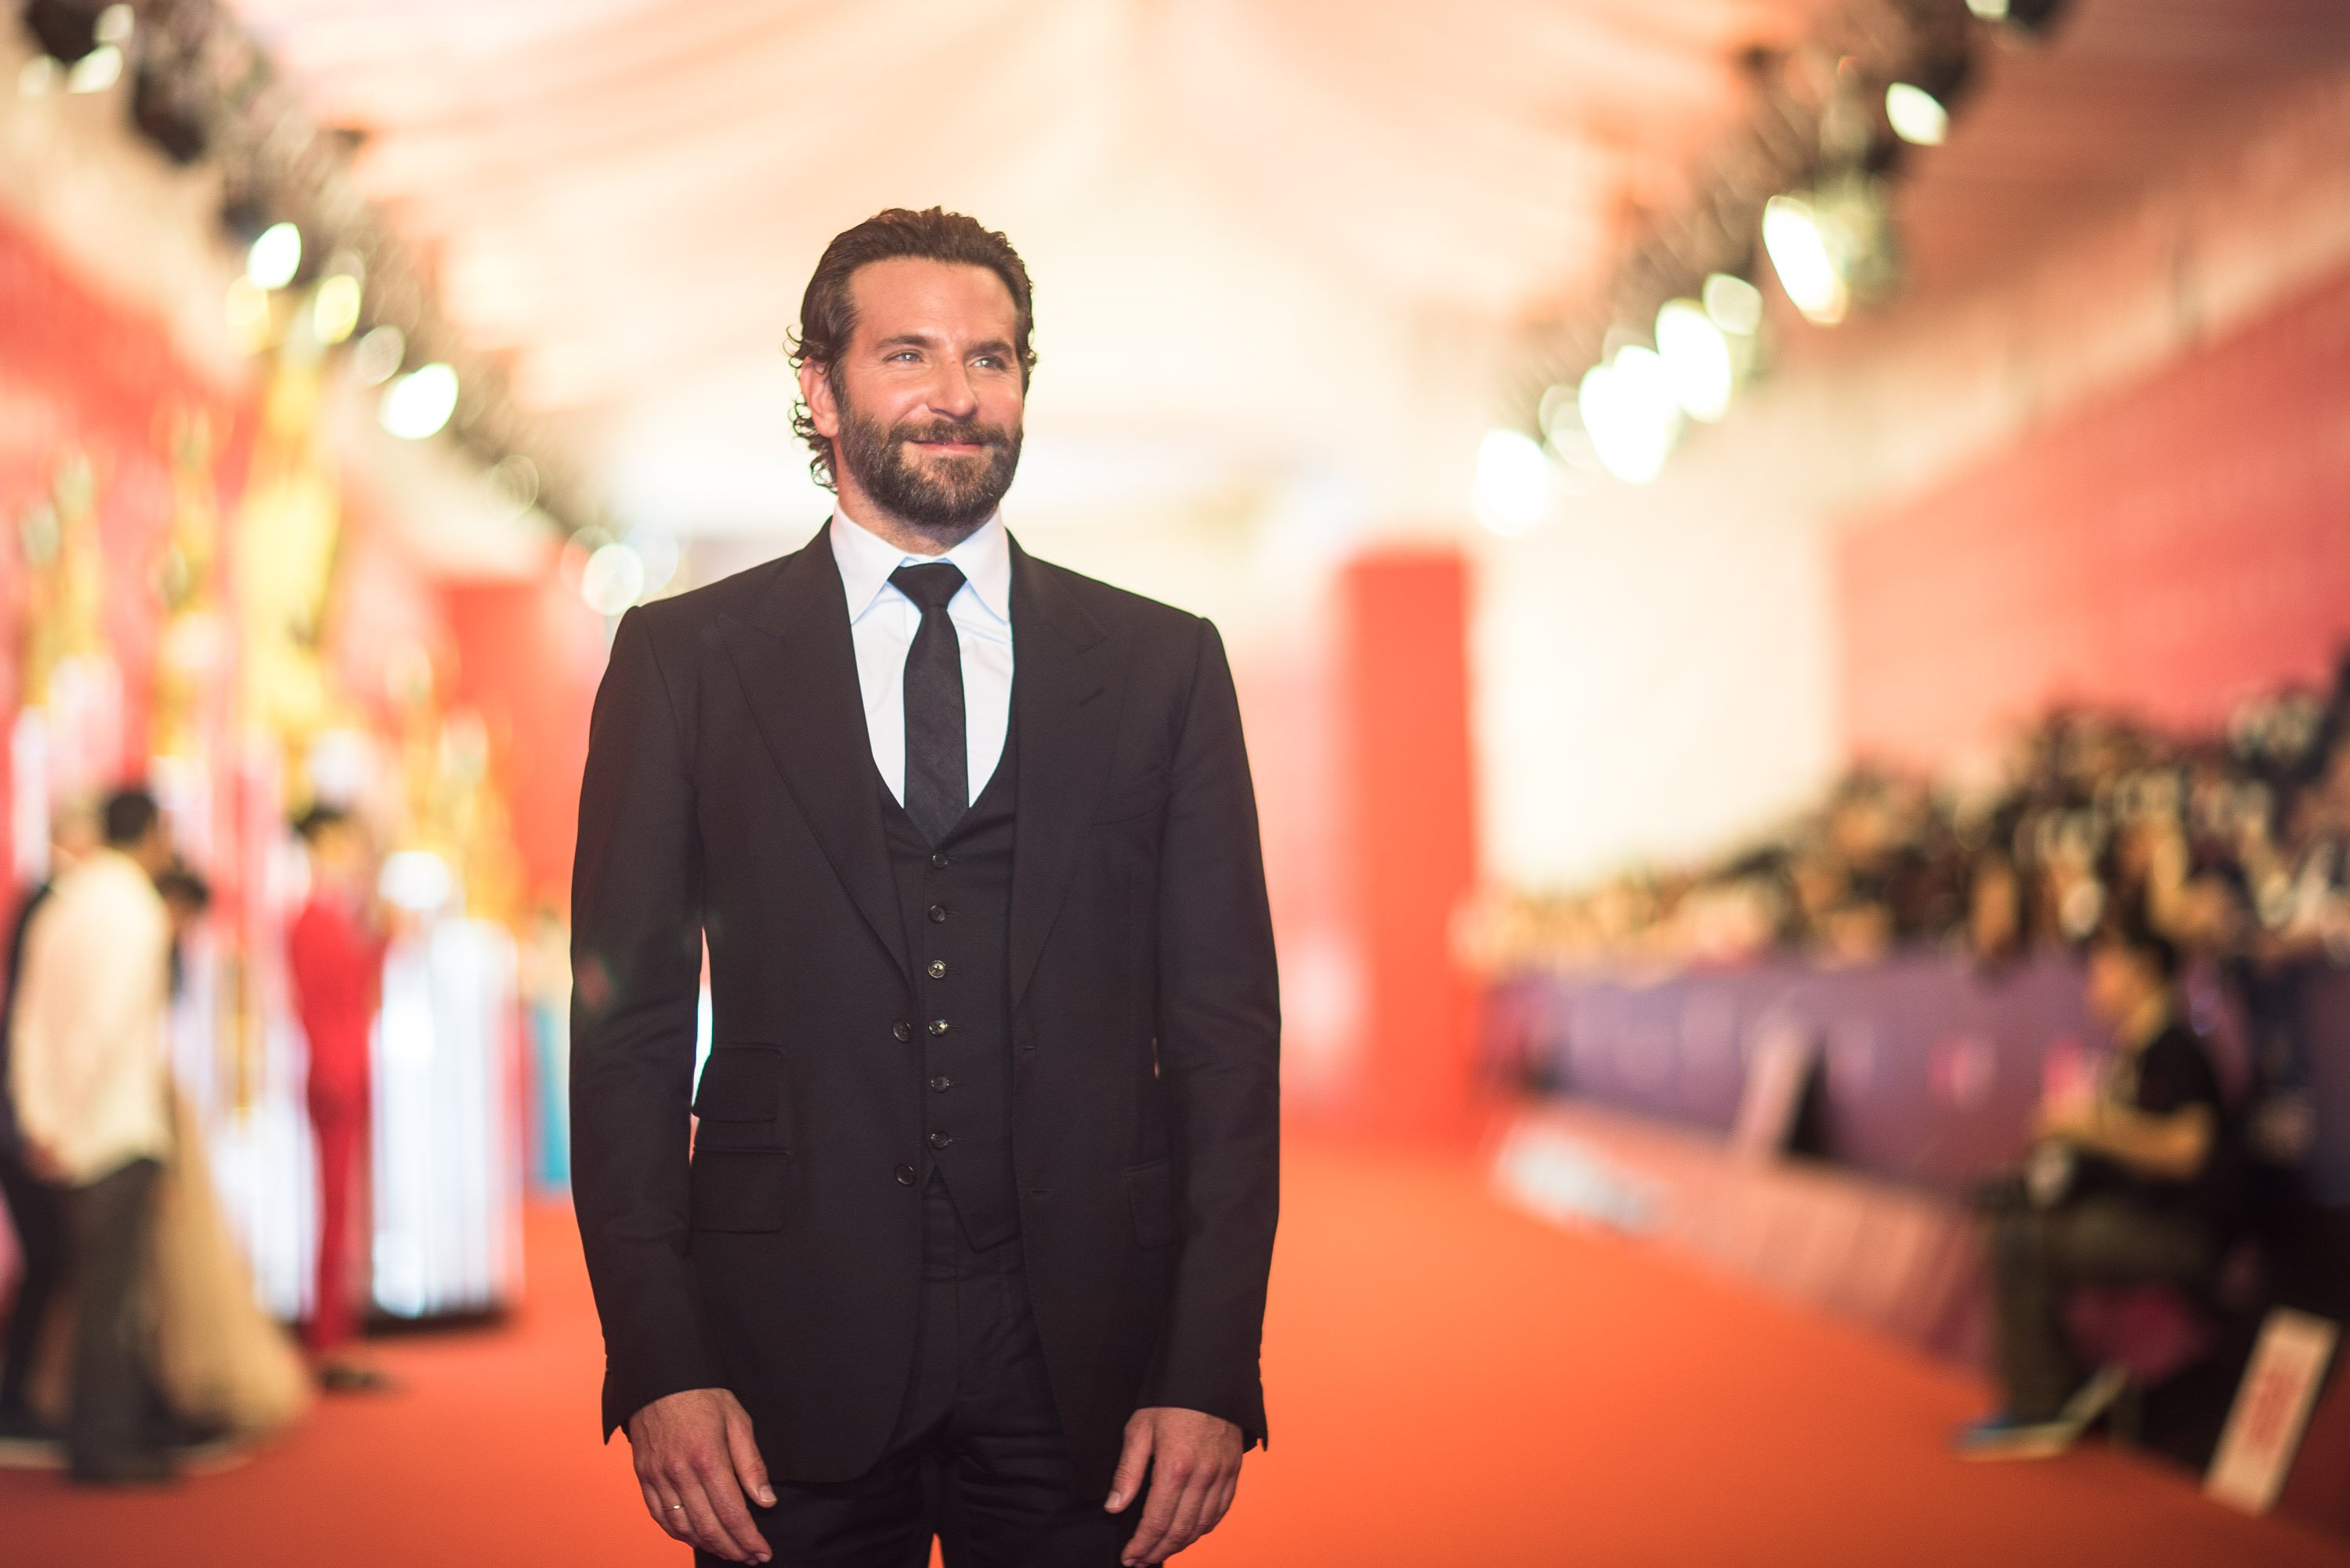 Bradley Cooper, actor | Photo: Getty Images